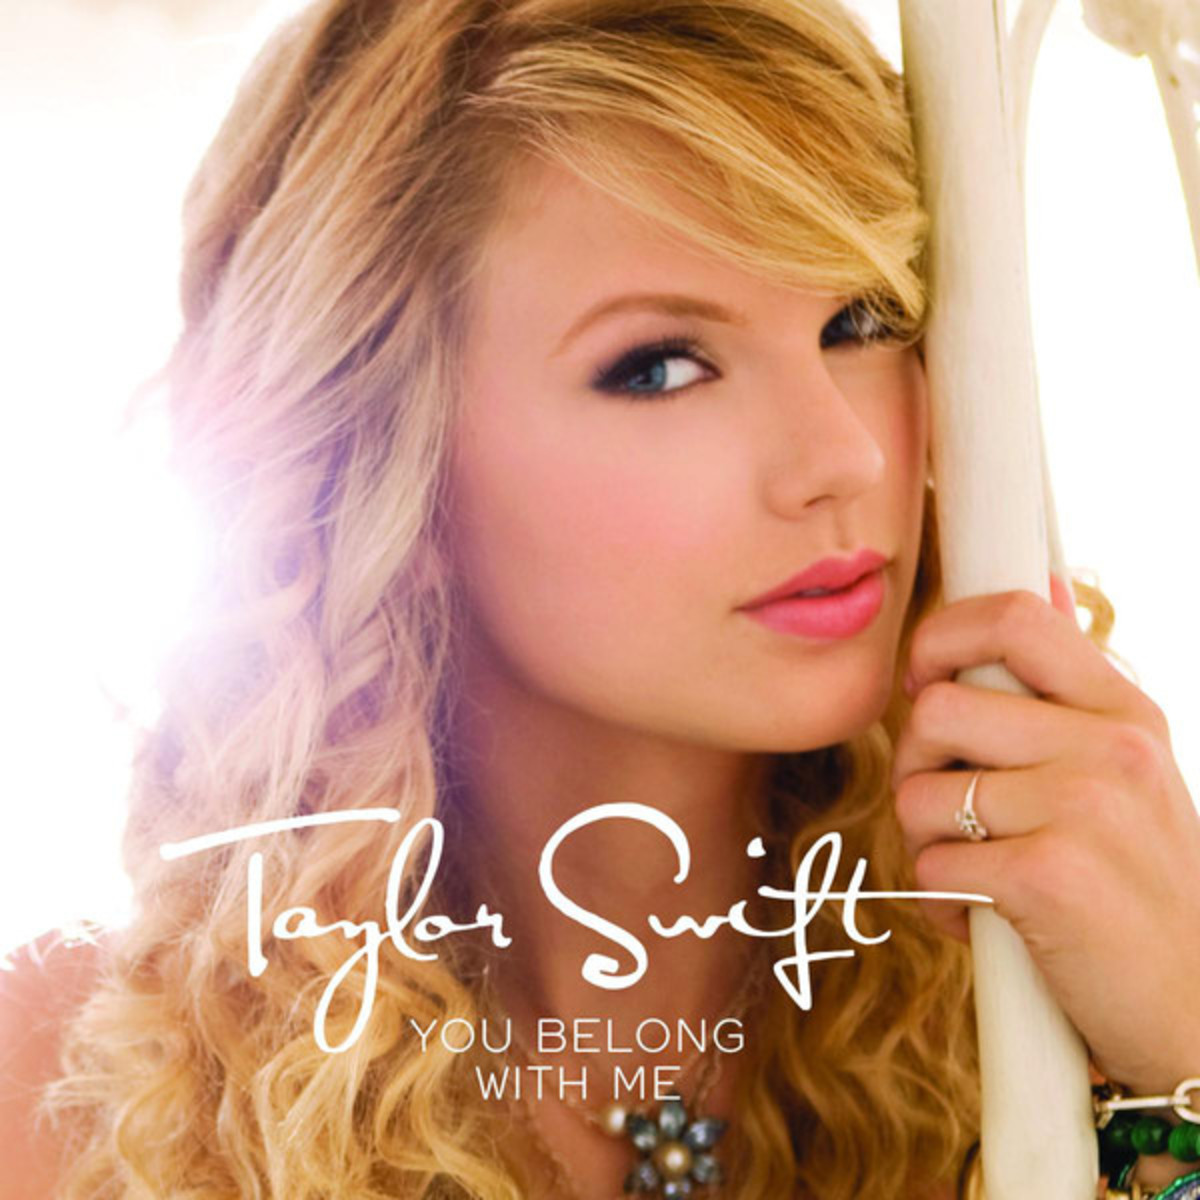 You Belong With Me by Taylor Swift